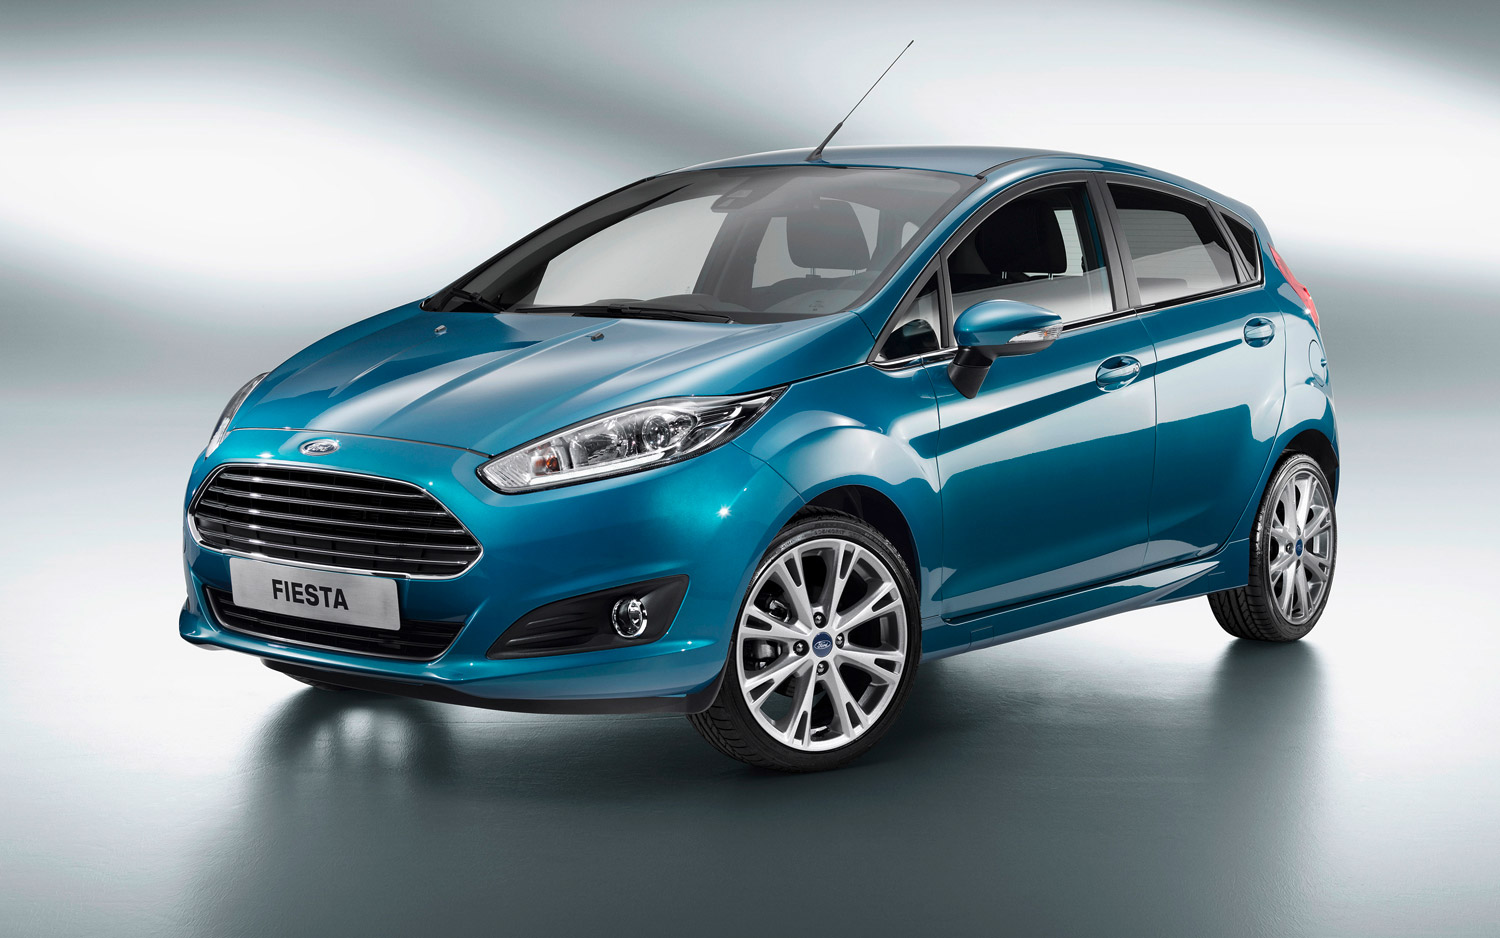 2014 Ford Fiesta Gets Aston Like Grille 10l Ecoboost But Not Two 12 Doors